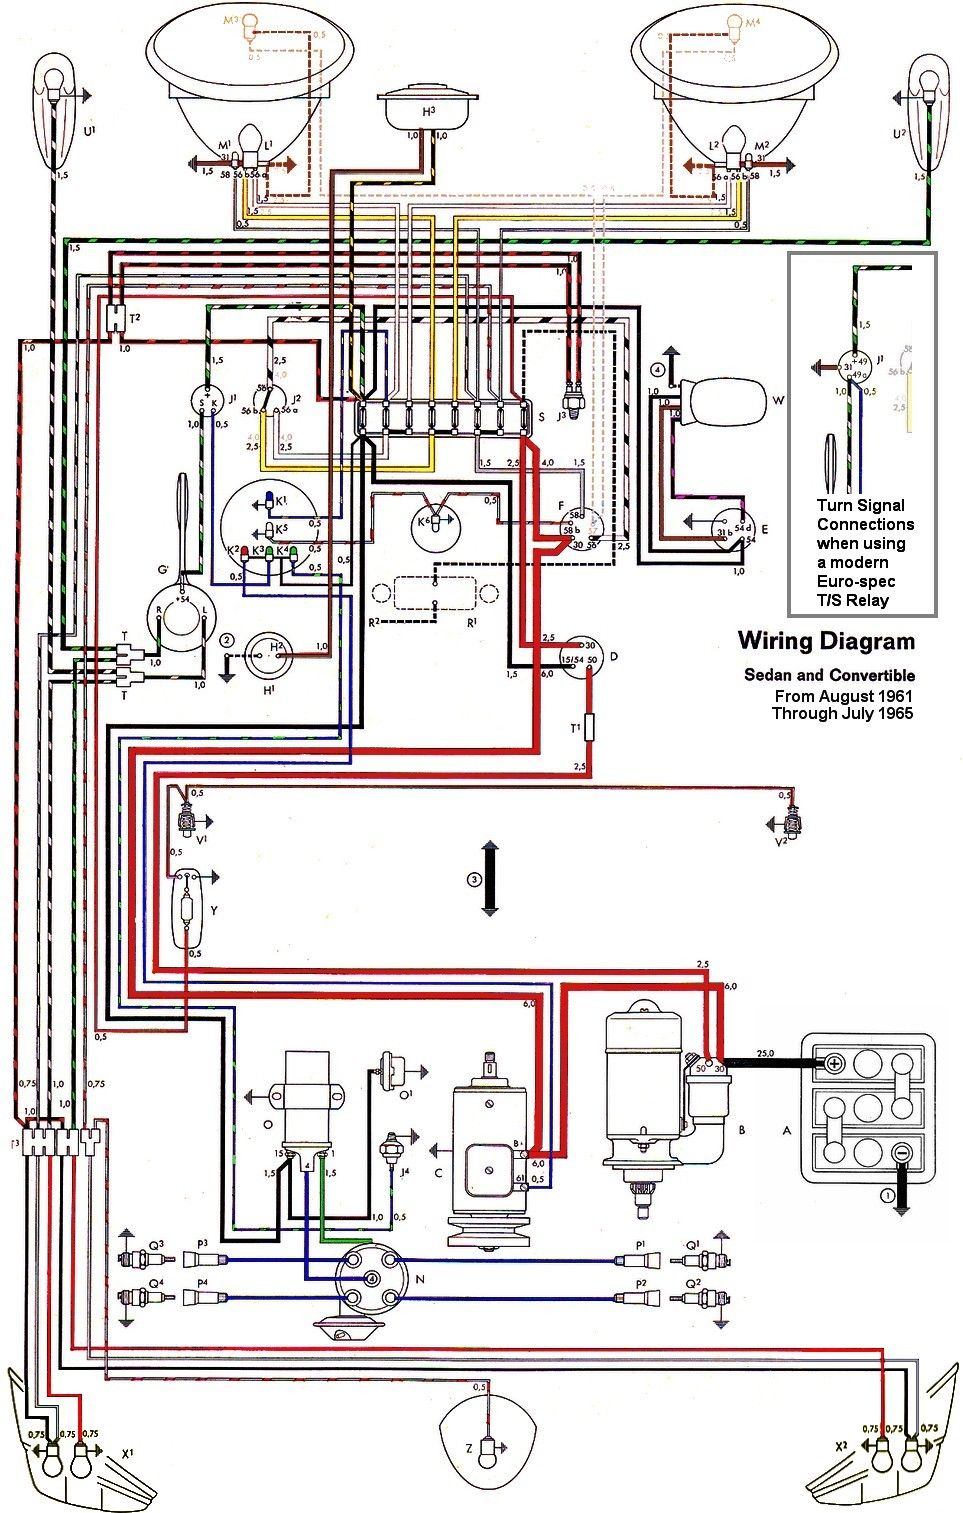 wiring diagram vw beetle sedan and convertible 1961 1965 vw rh pinterest com vw t4 wiring colours vw t4 wiring colours